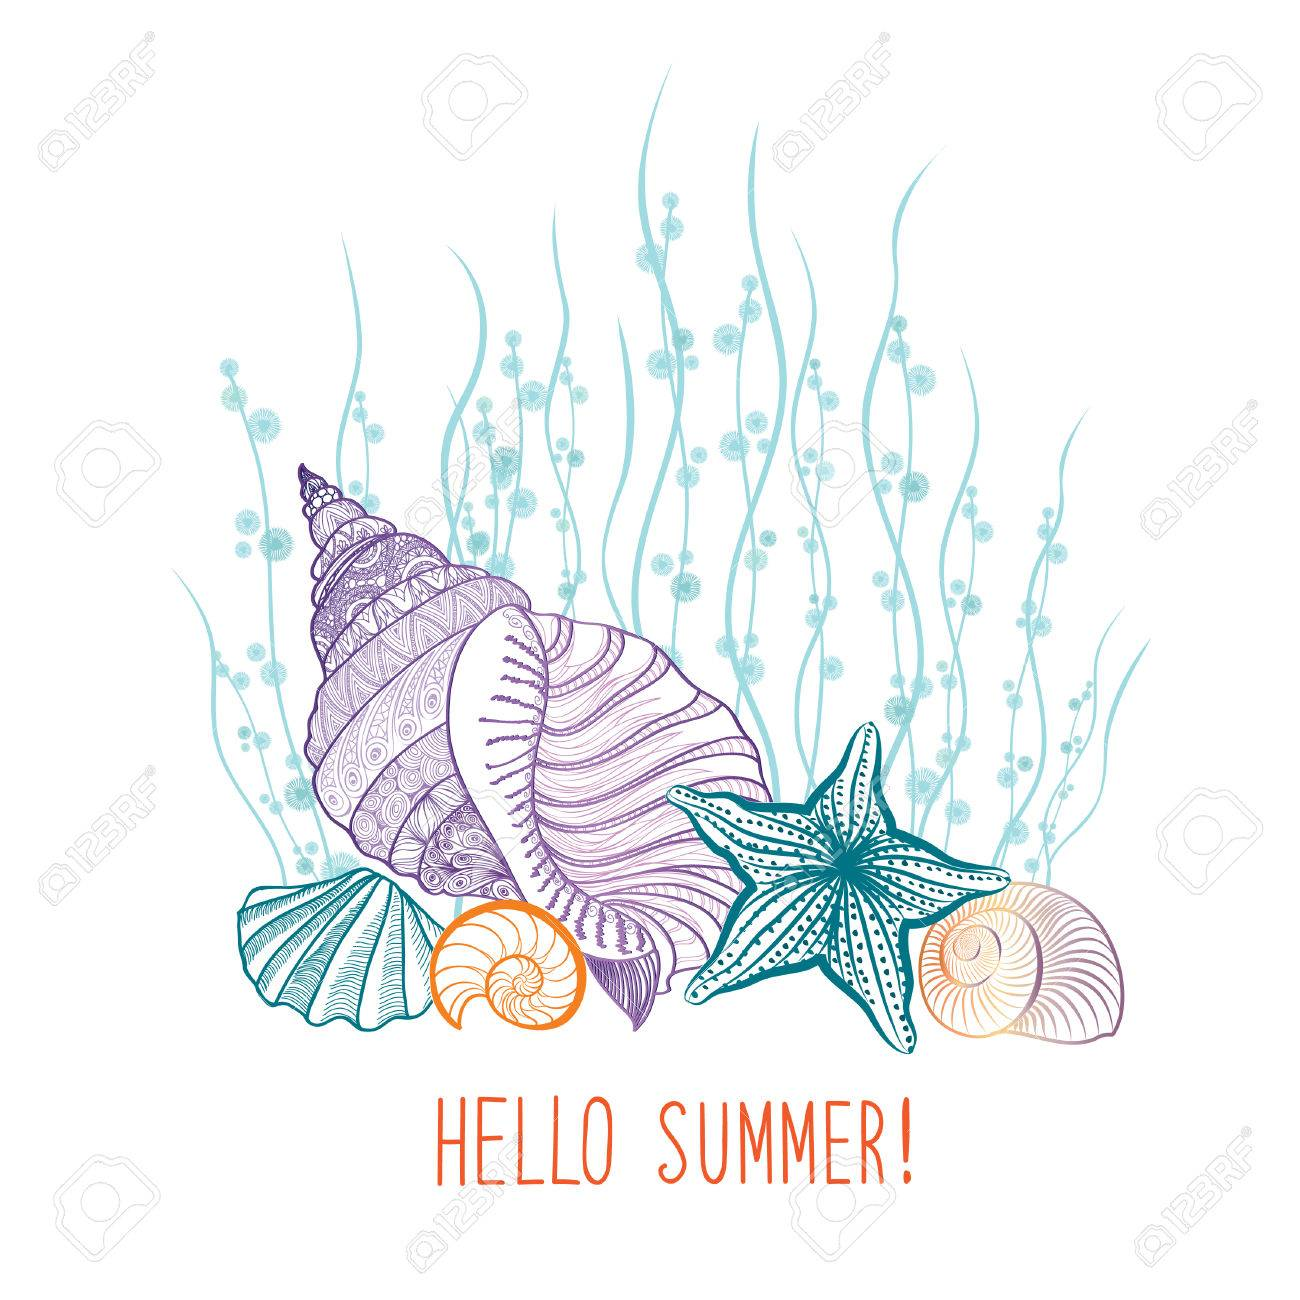 Summer Background. Summer Holidays Cover With Seashell Sea Star. Hello  Summer Greeting Card.